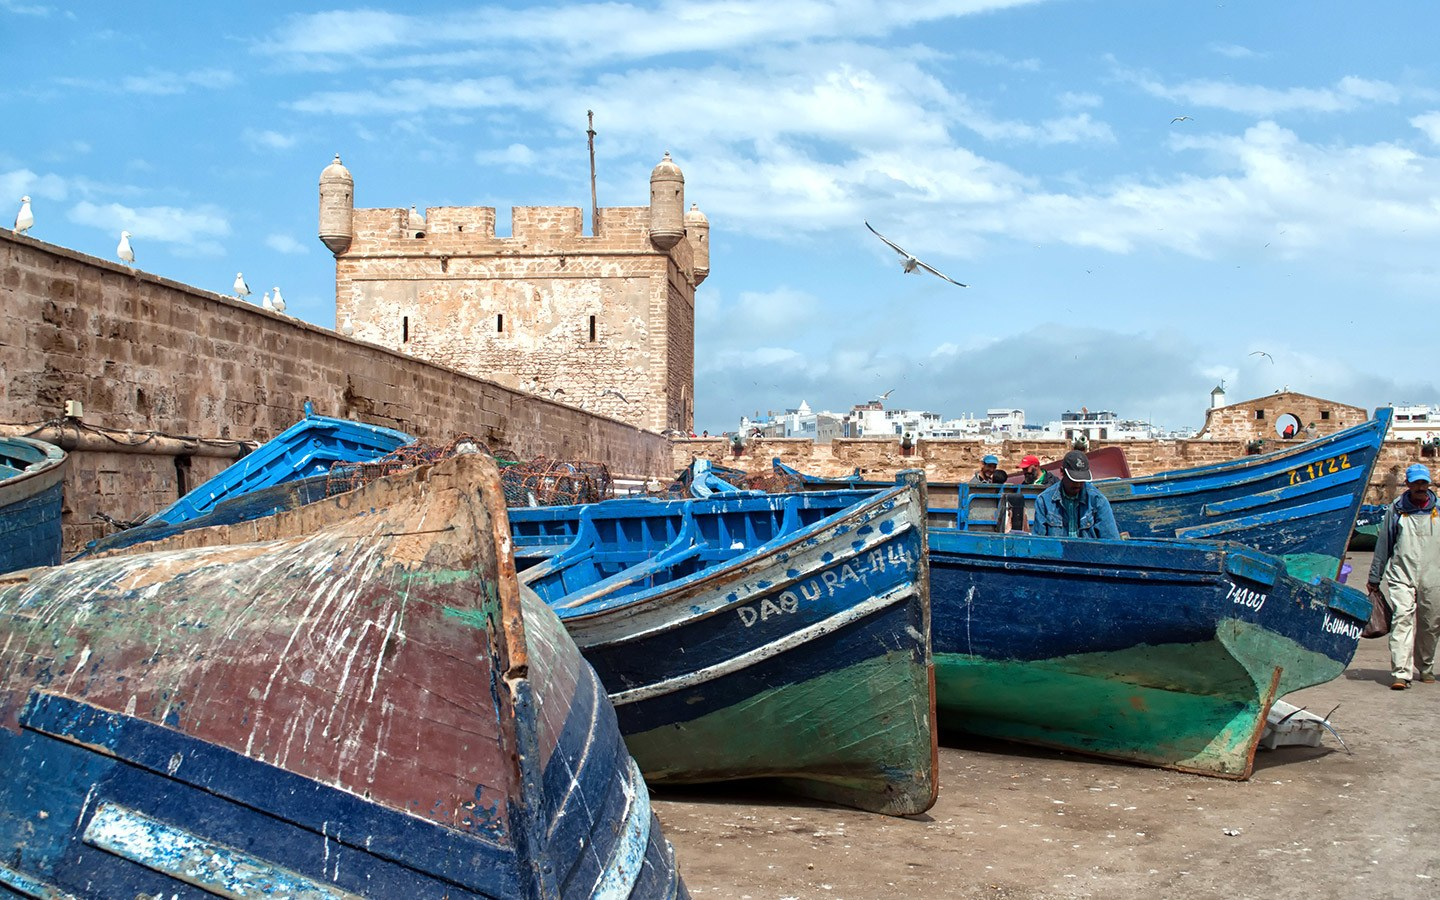 Boats in the harbour in Essaouira, Morocco